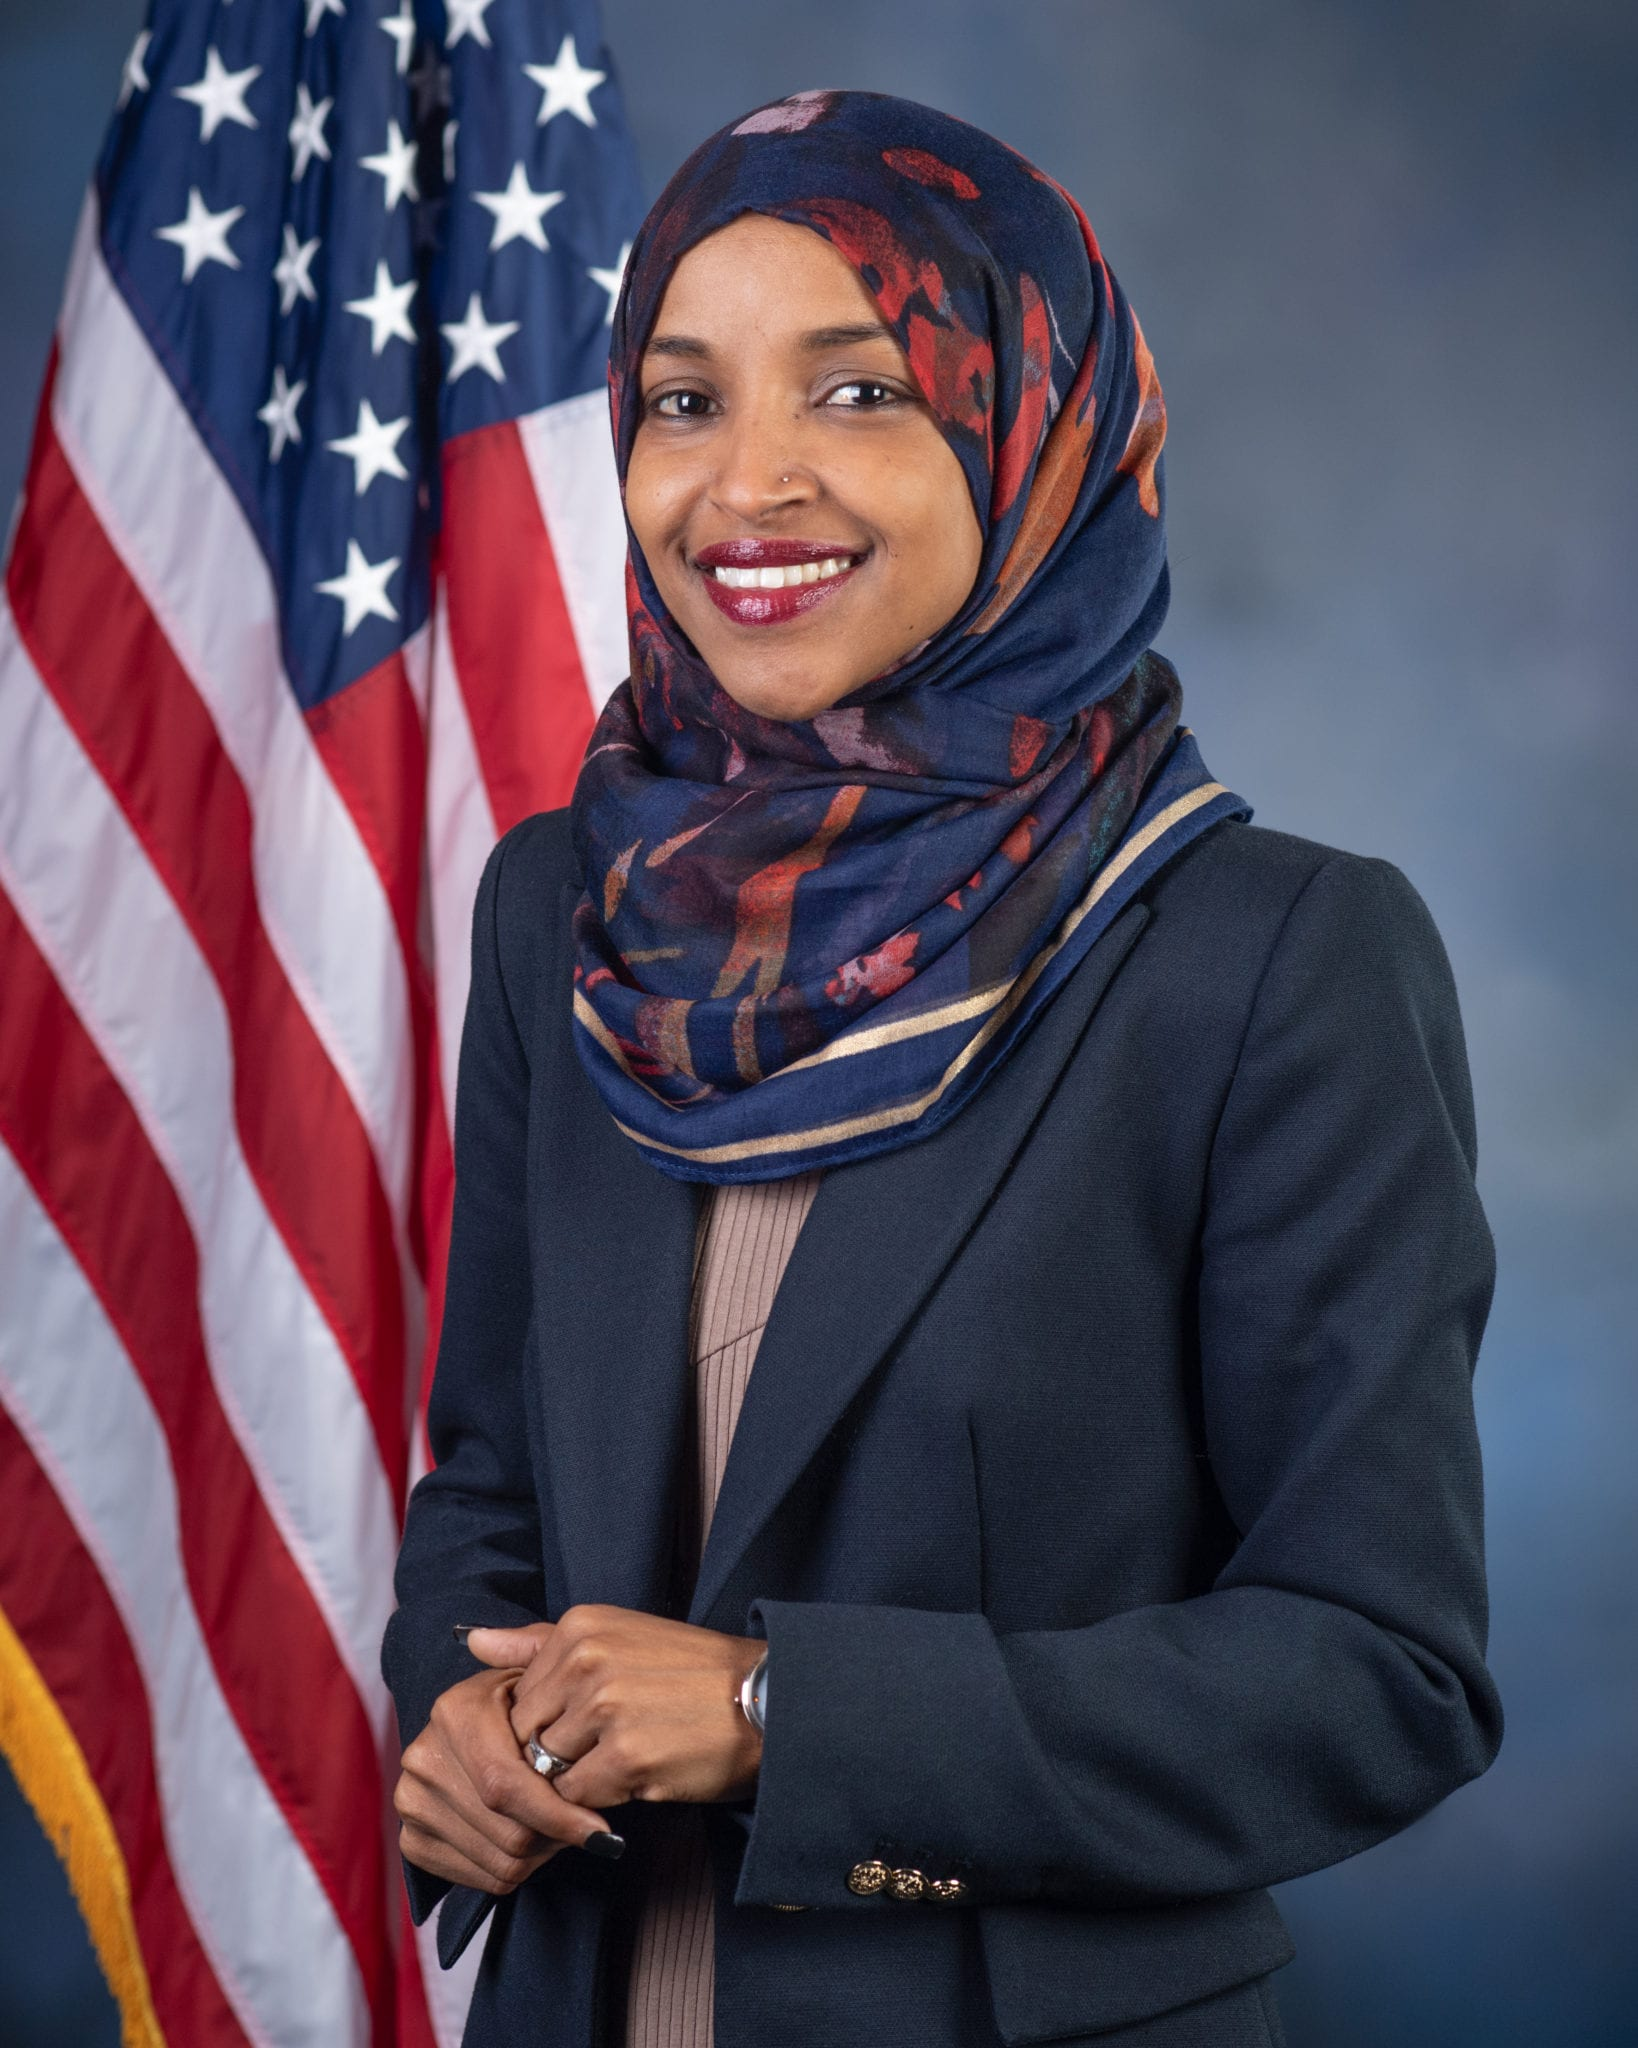 NPR misleads public in report on AIPAC vs Ilhan Omar